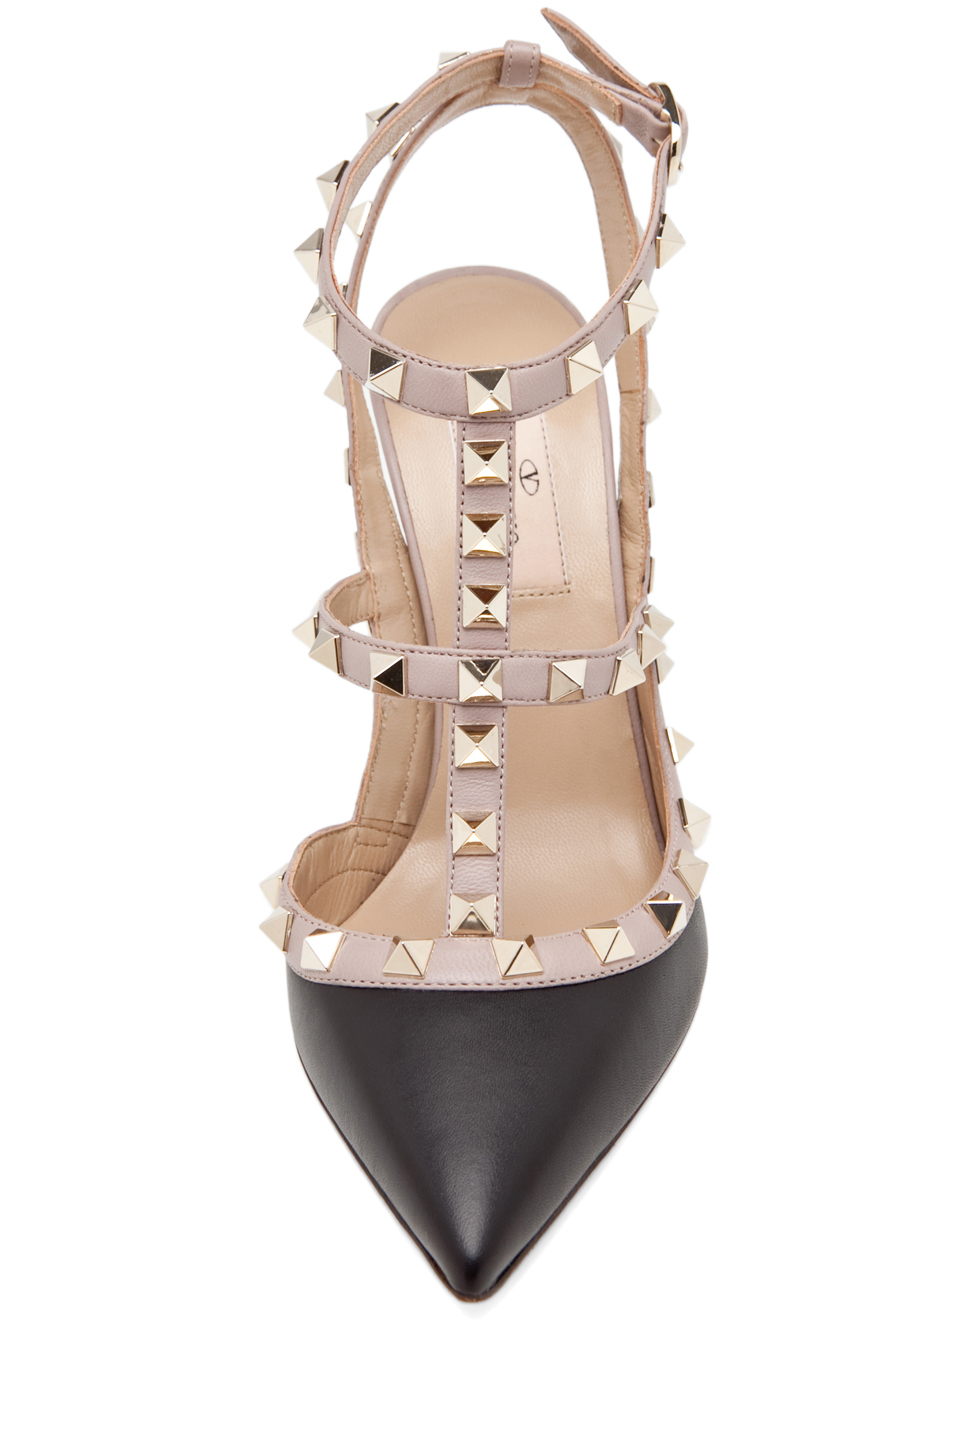 Valentino|Rockstud Leather Slingbacks T.100 in Black